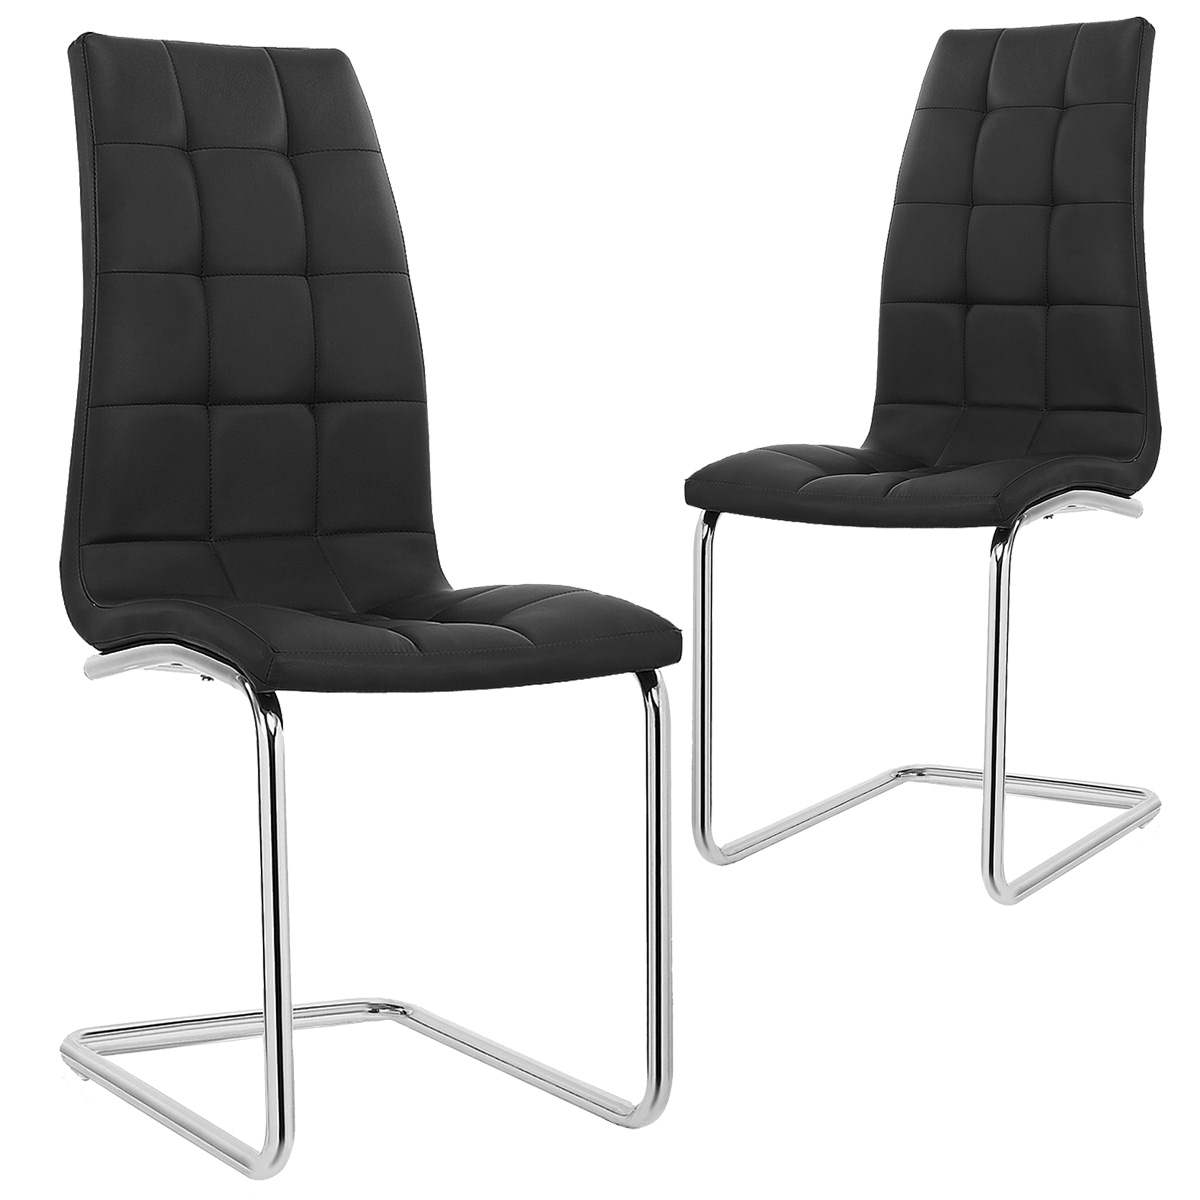 Deco in paris lot de 2 chaises noir design matelasse for Chaise noir design